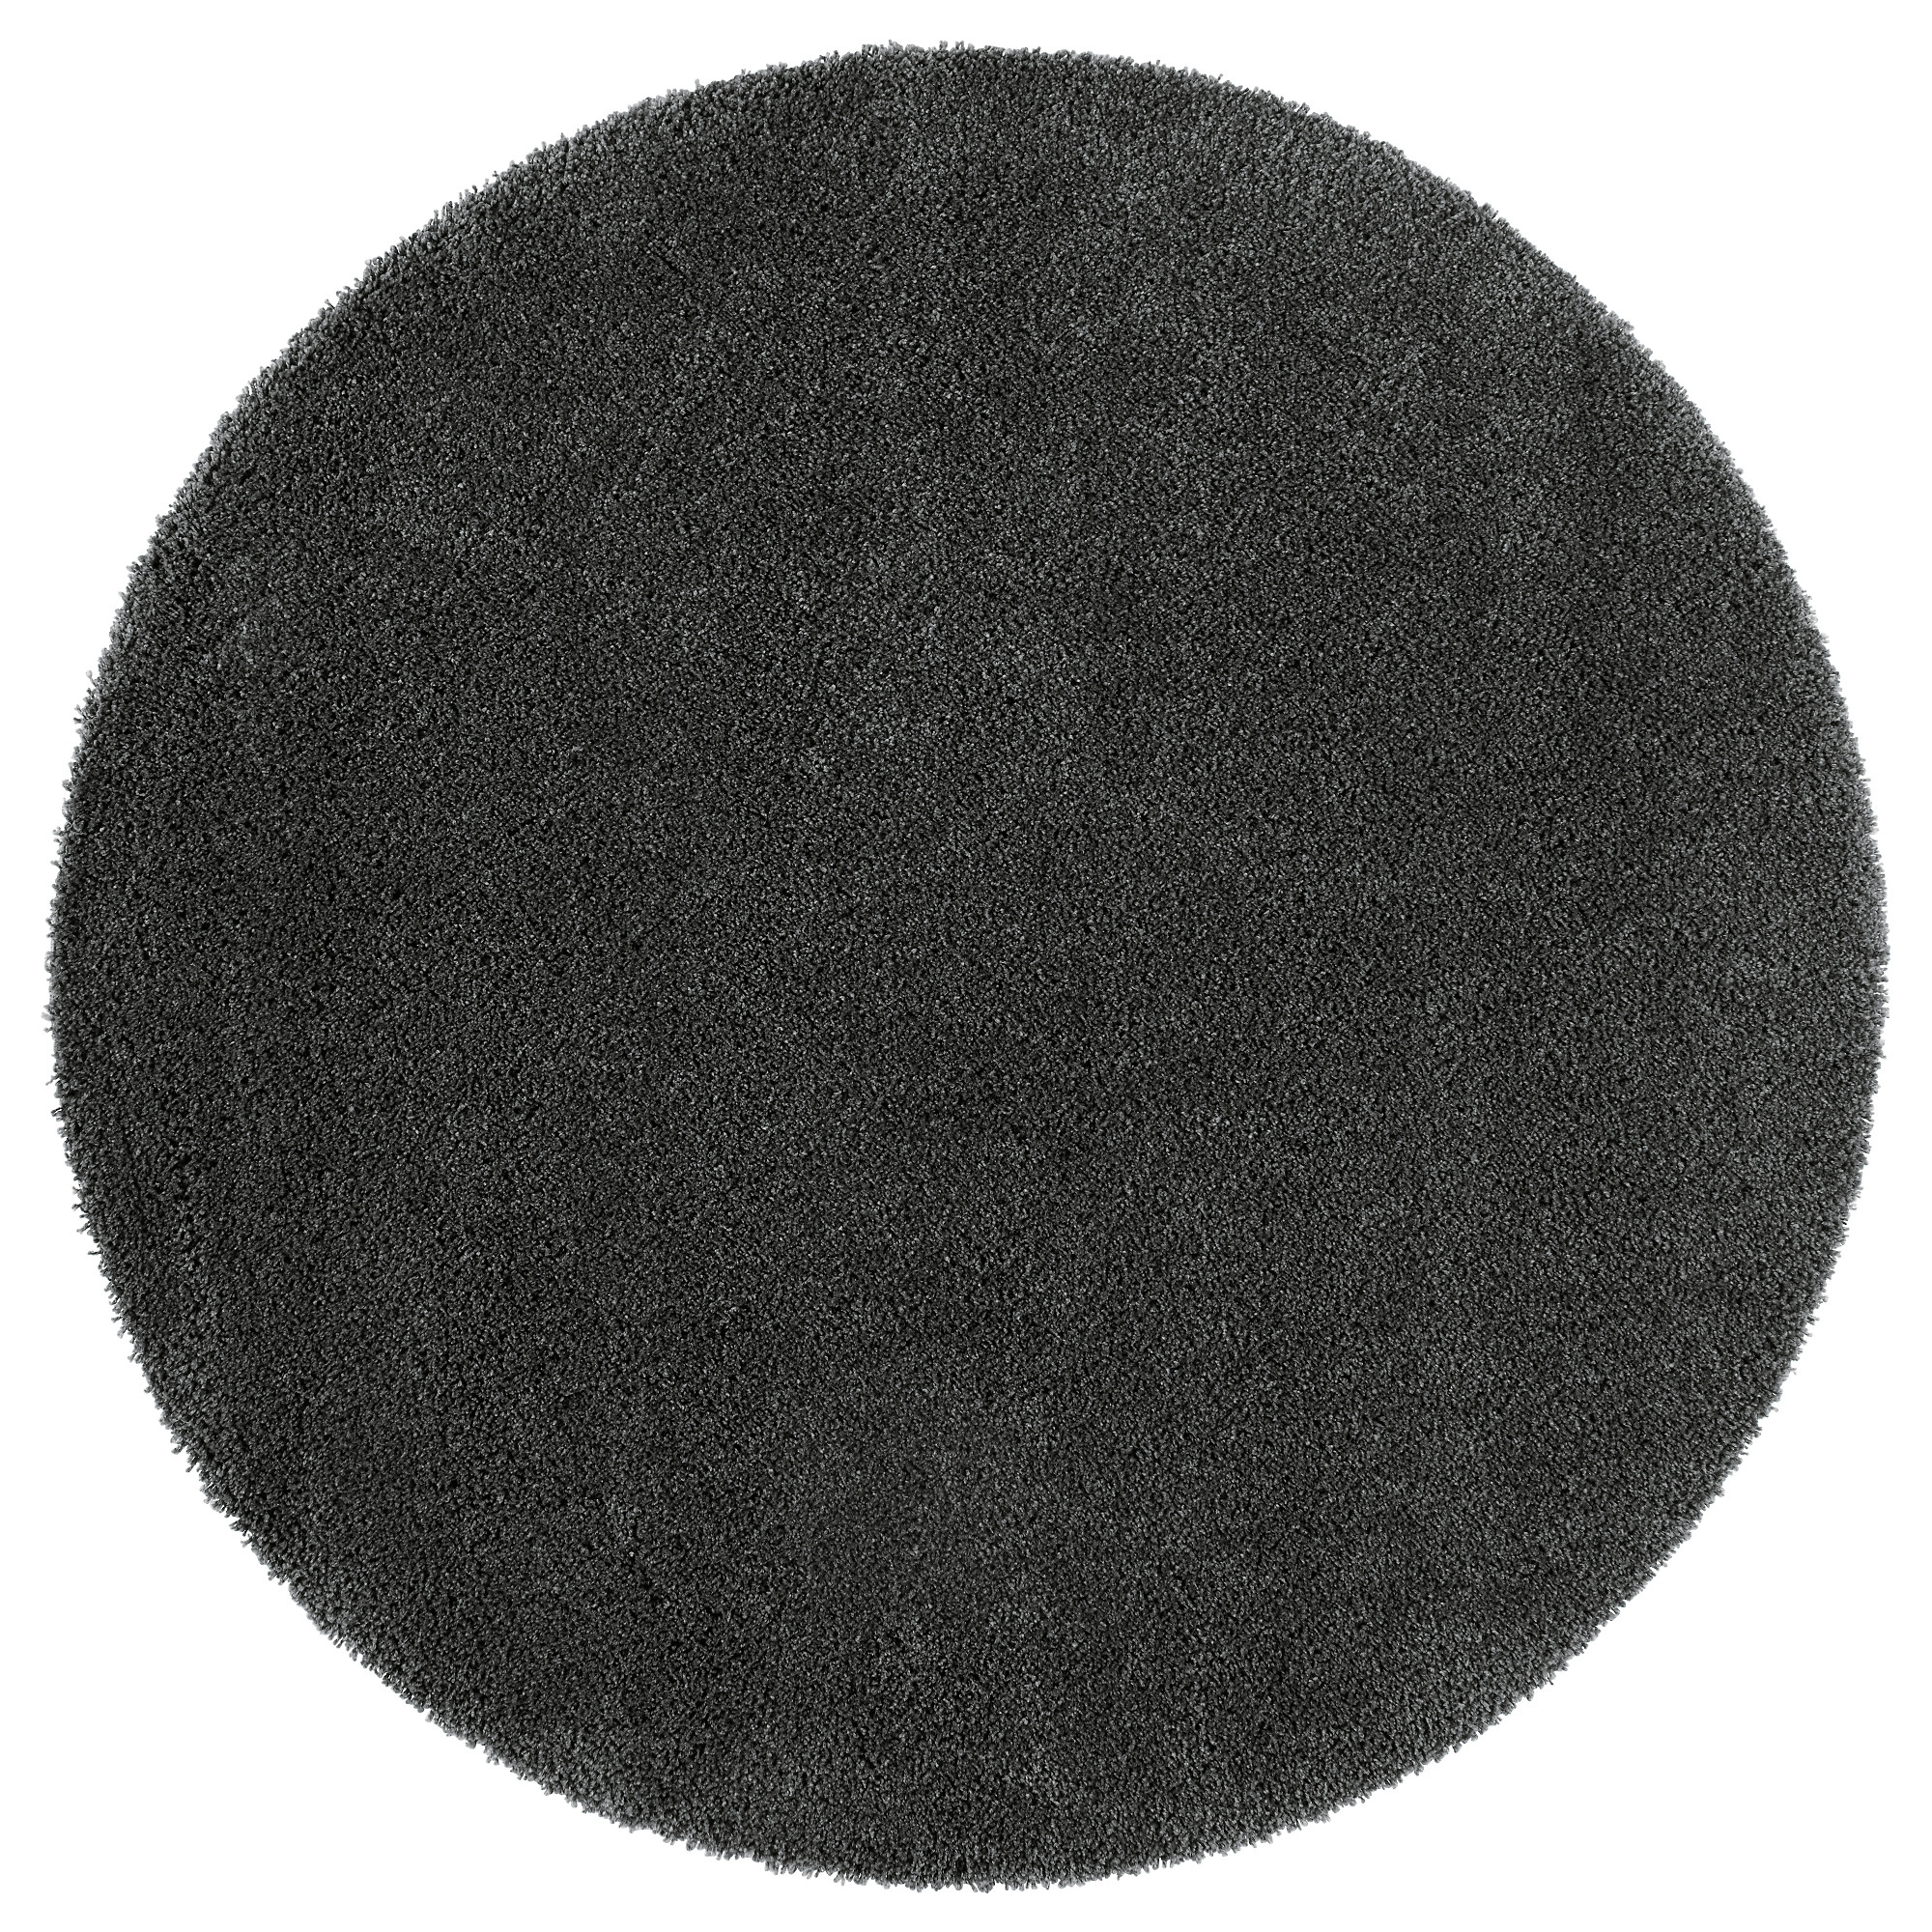 Round Rugs Ikea Throughout Circular Wool Rugs (Image 11 of 15)